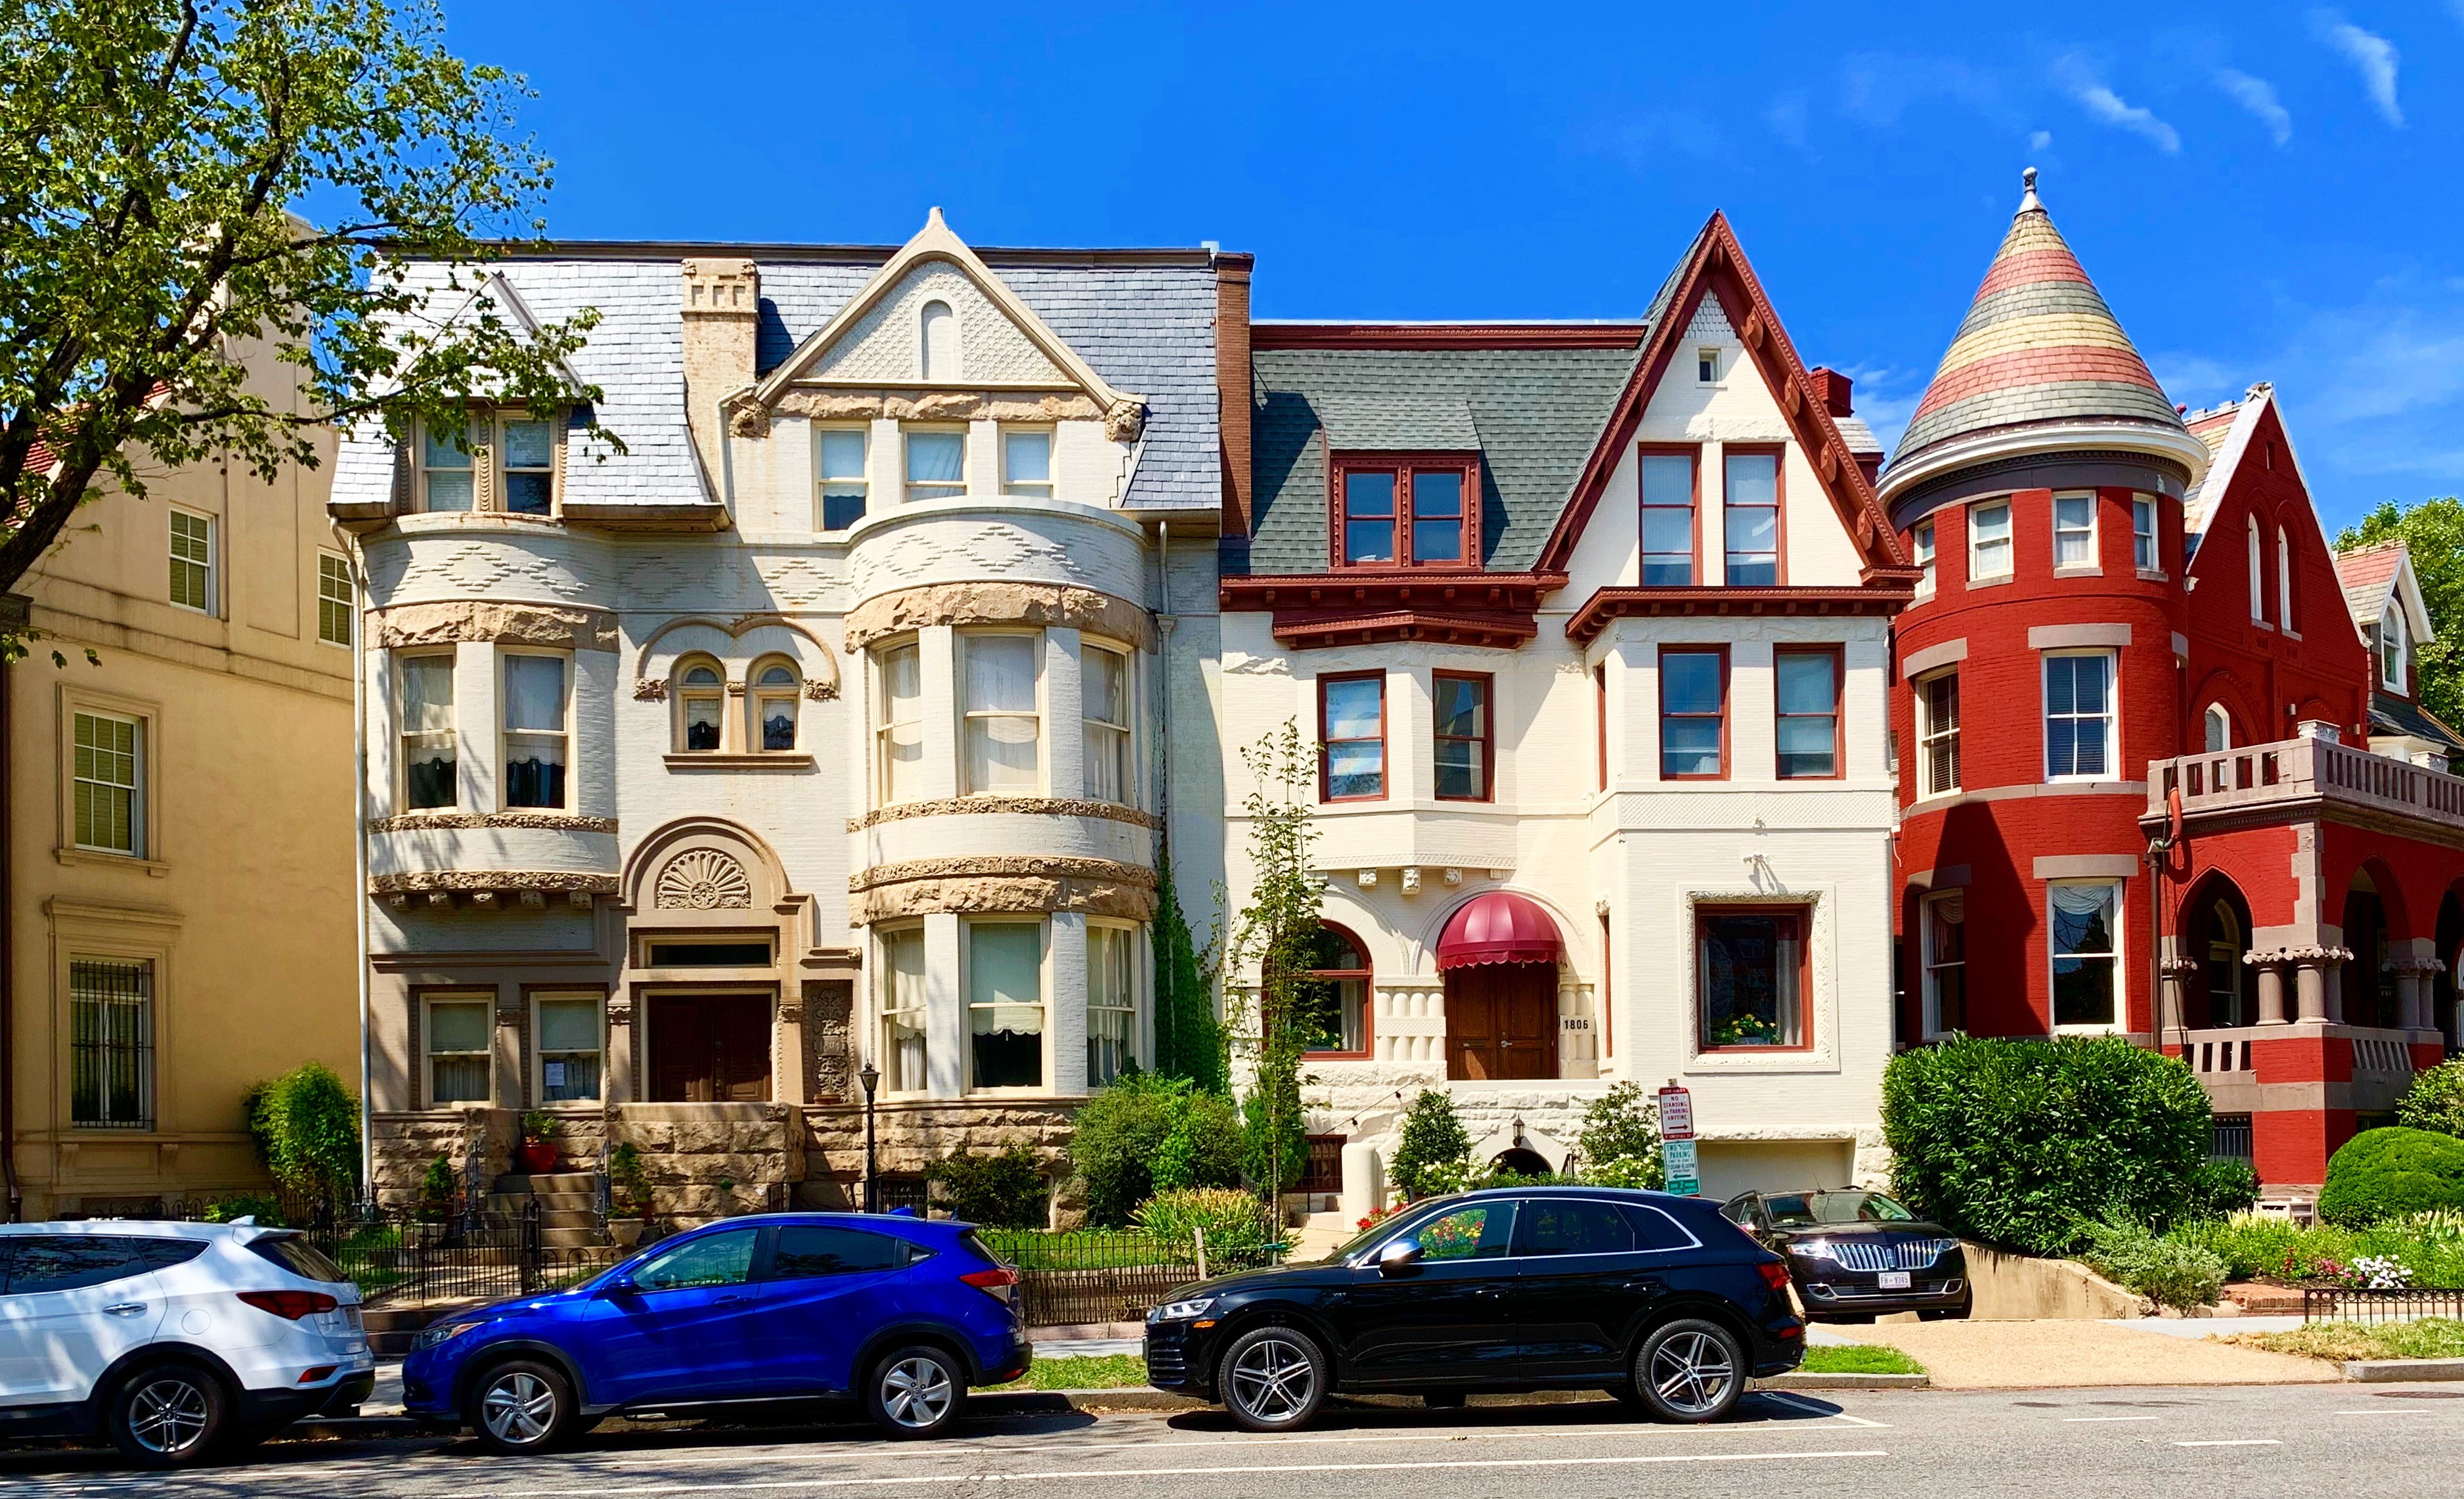 Washington, DC Luxury Homes For Sale. Near Dupont Circle. Artyom Shmatko Realtor.